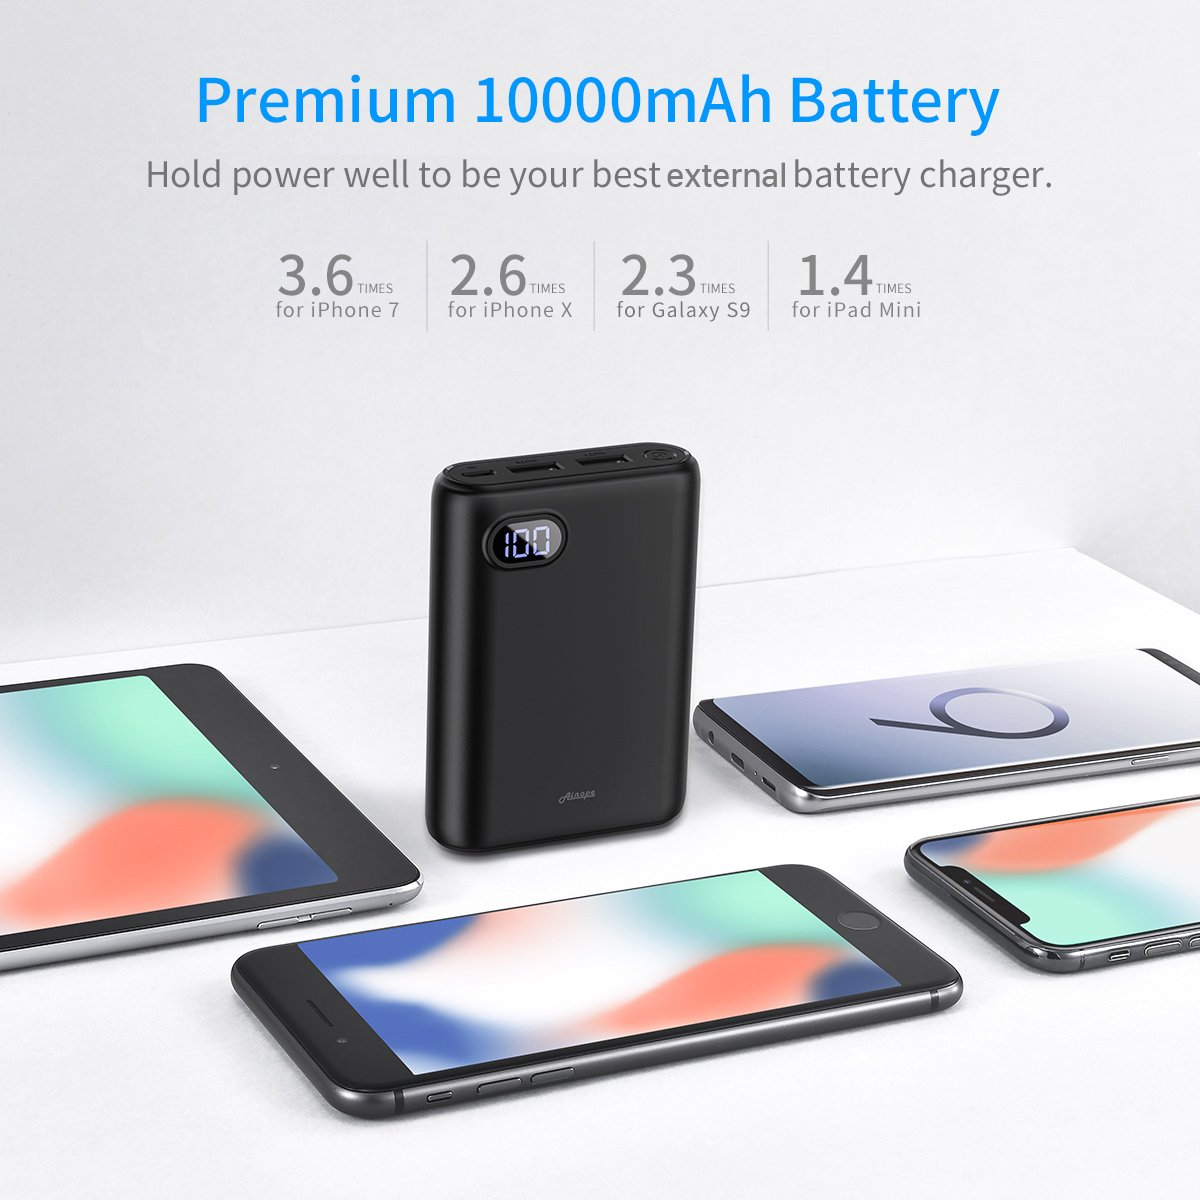 10000mAh Portable Charger,(Smallest) (LCD Display) (Powerful) Ainope External Battery Pack/Battery Charger/Phone Backup Power Bank with Dual USB Output(3.1A),Perfect Carry for Travel-Black by Ainope (Image #4)